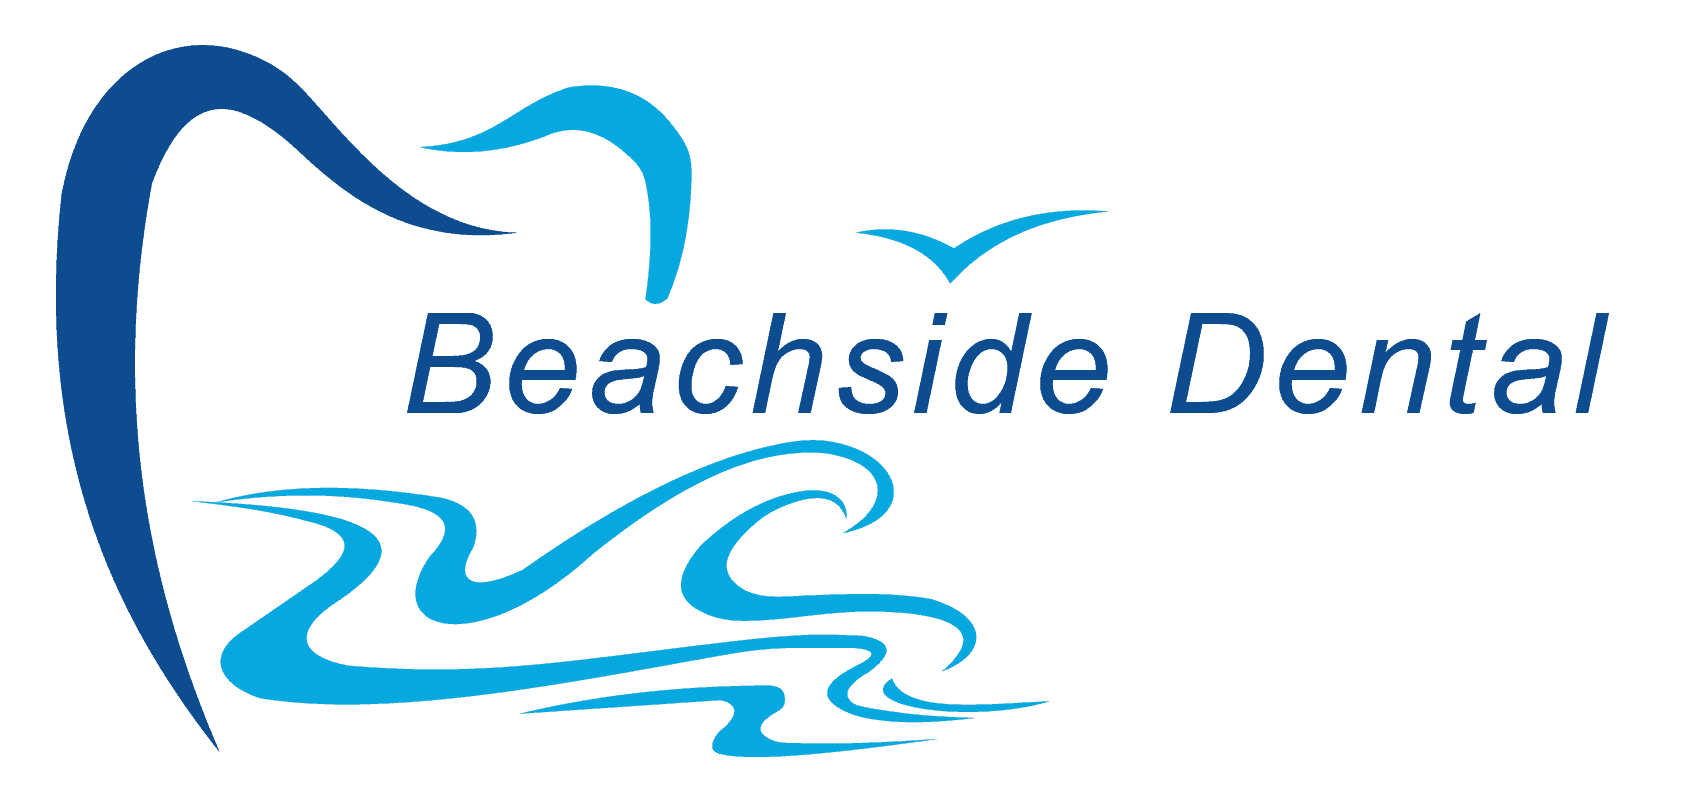 Beachside Dental Group